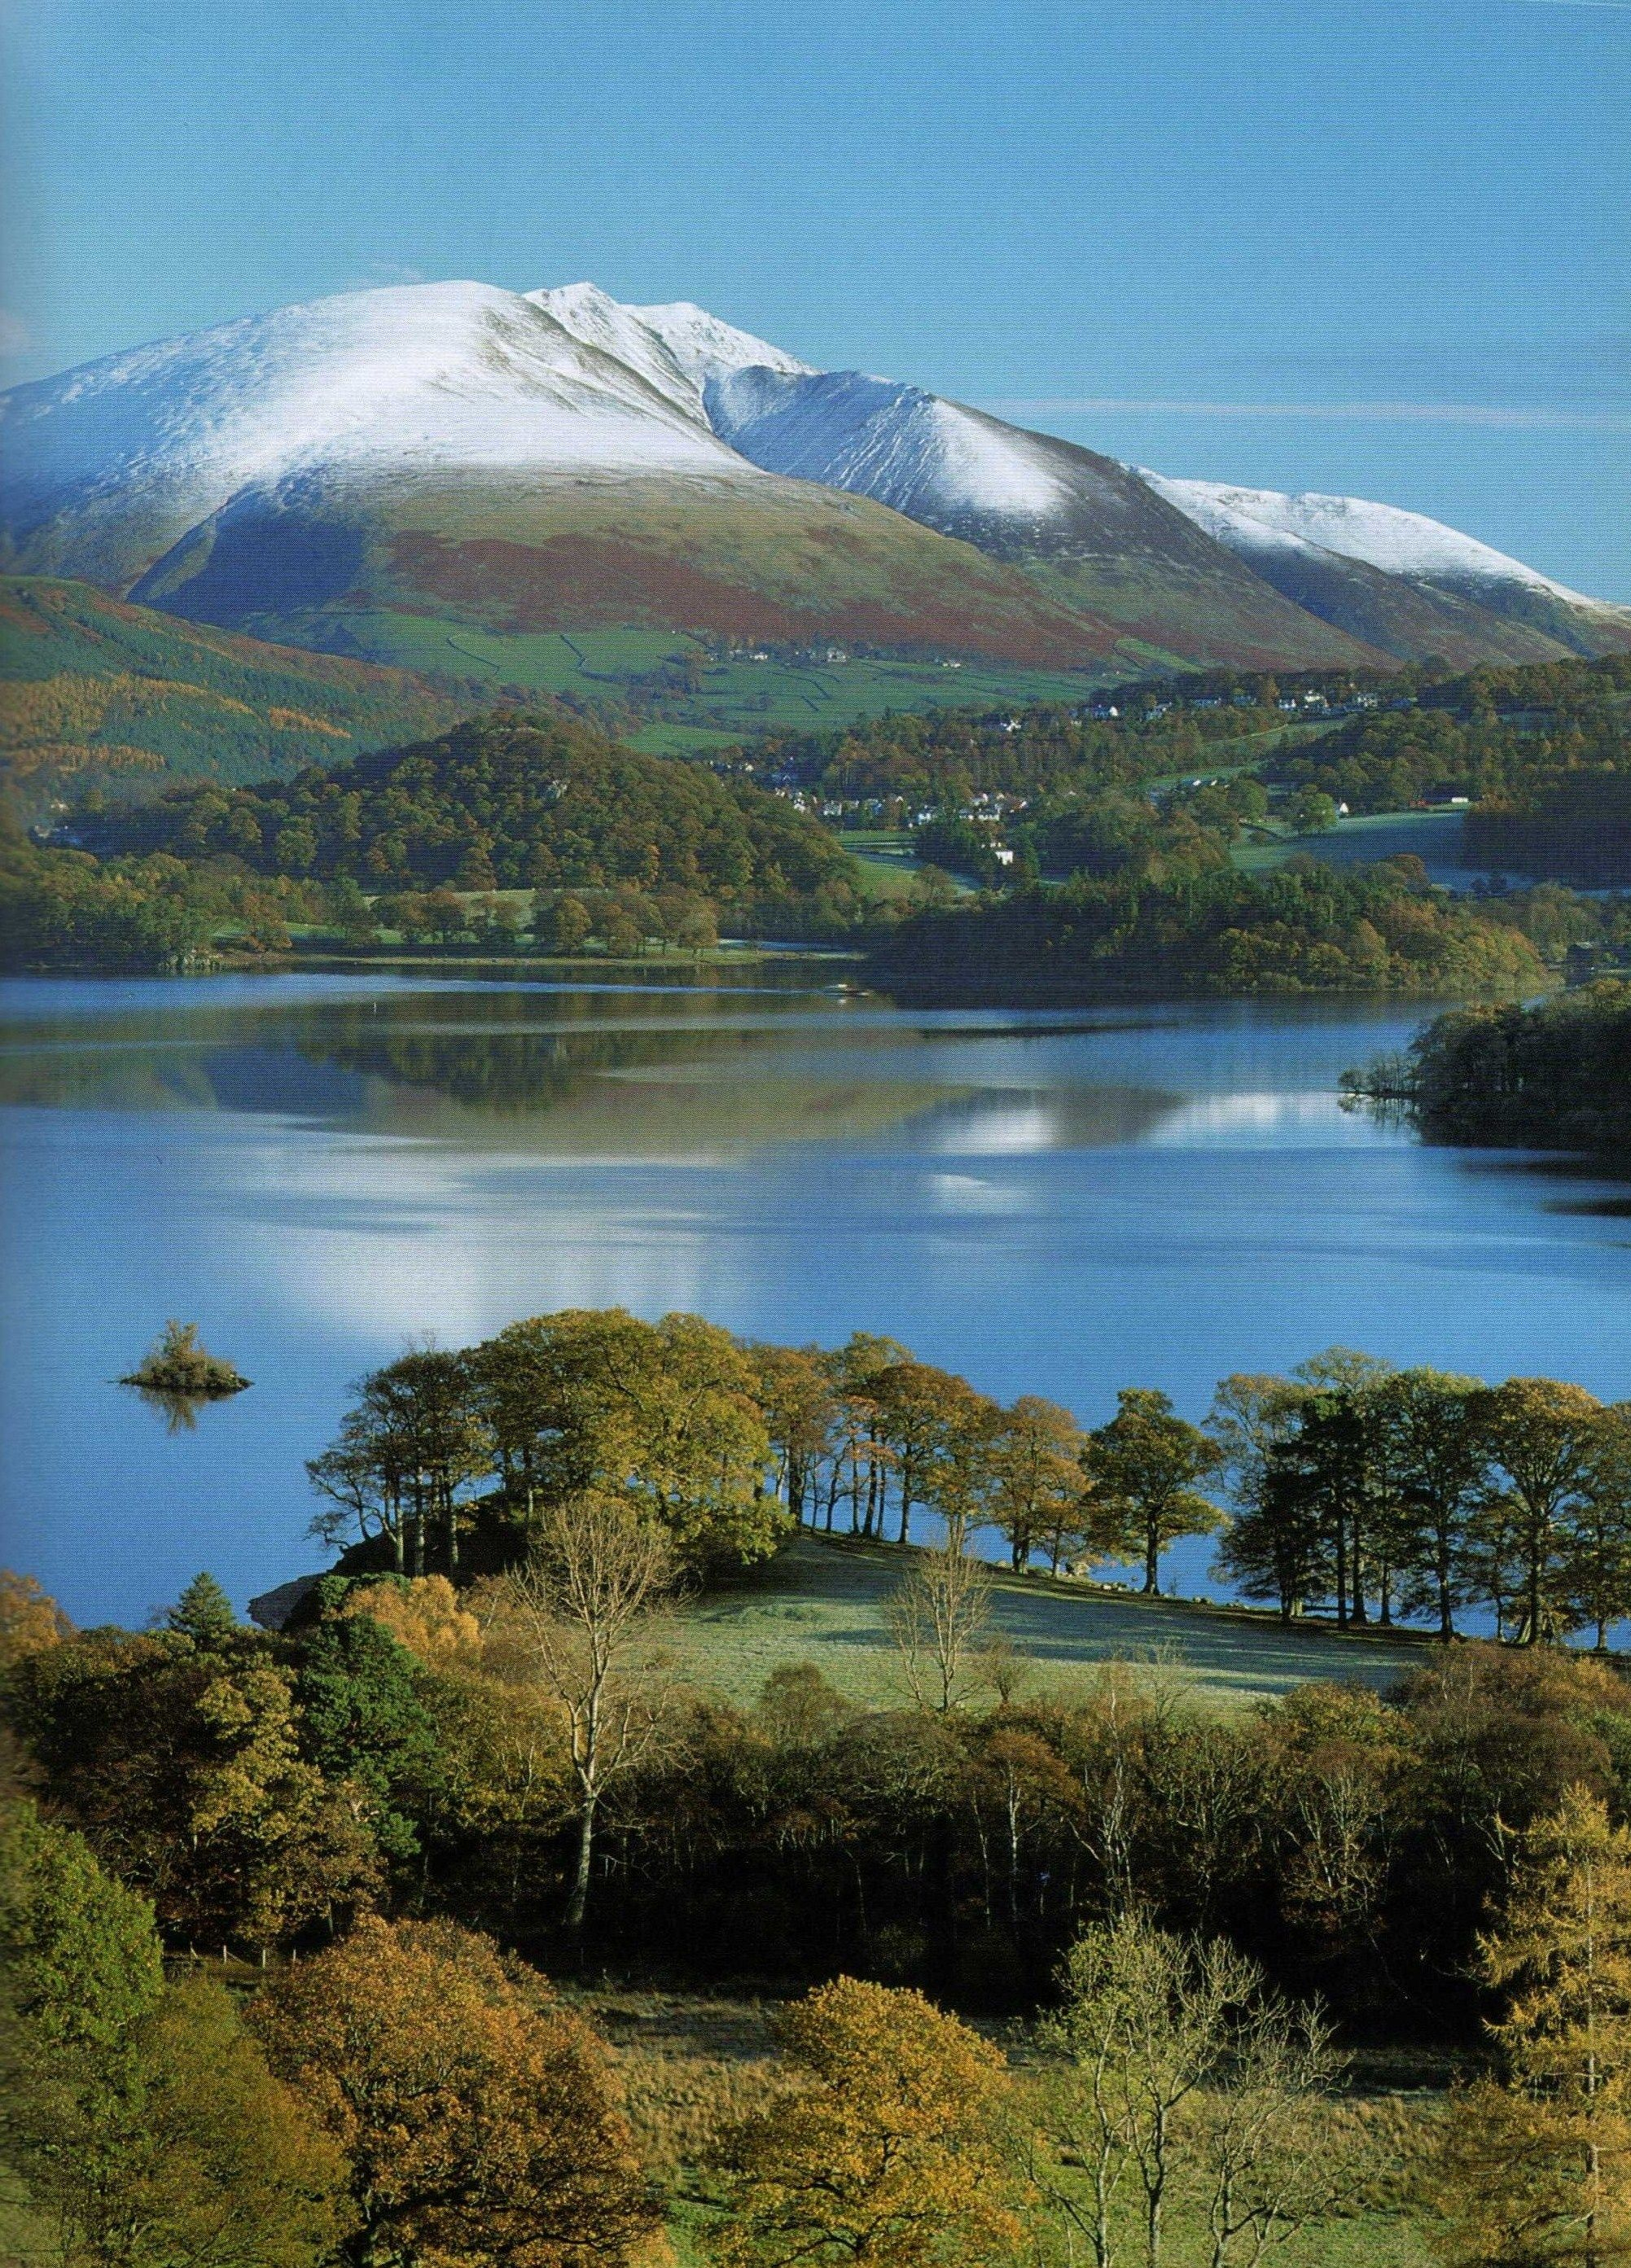 Derwentwater Lake District Cumbria England The Most Beautiful Place I Have Ever Been I